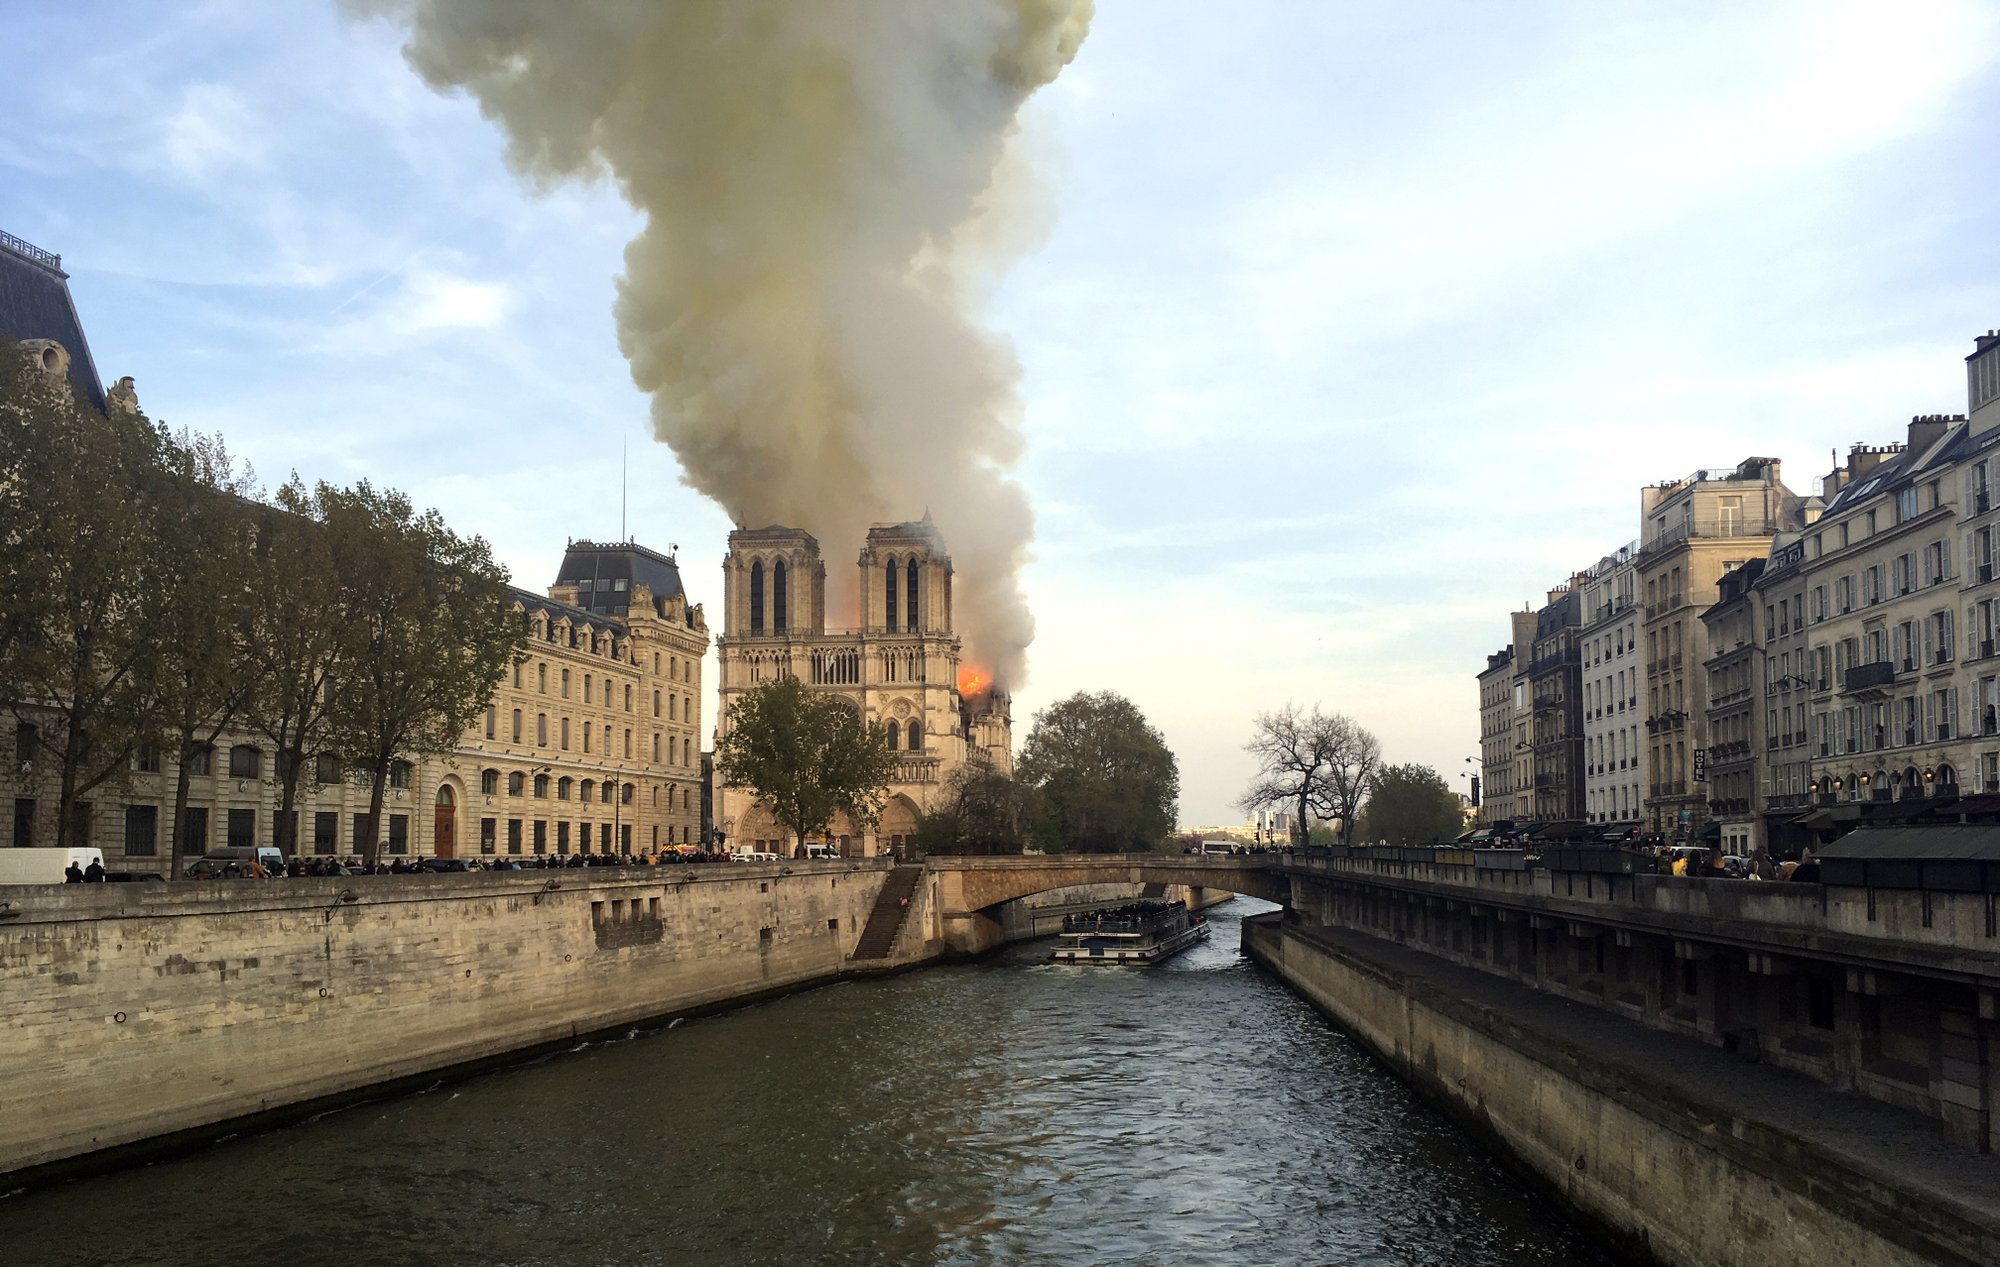 Massive plumes of yellow brown smoke filled the air above Notre-Dame Cathedral. — AP